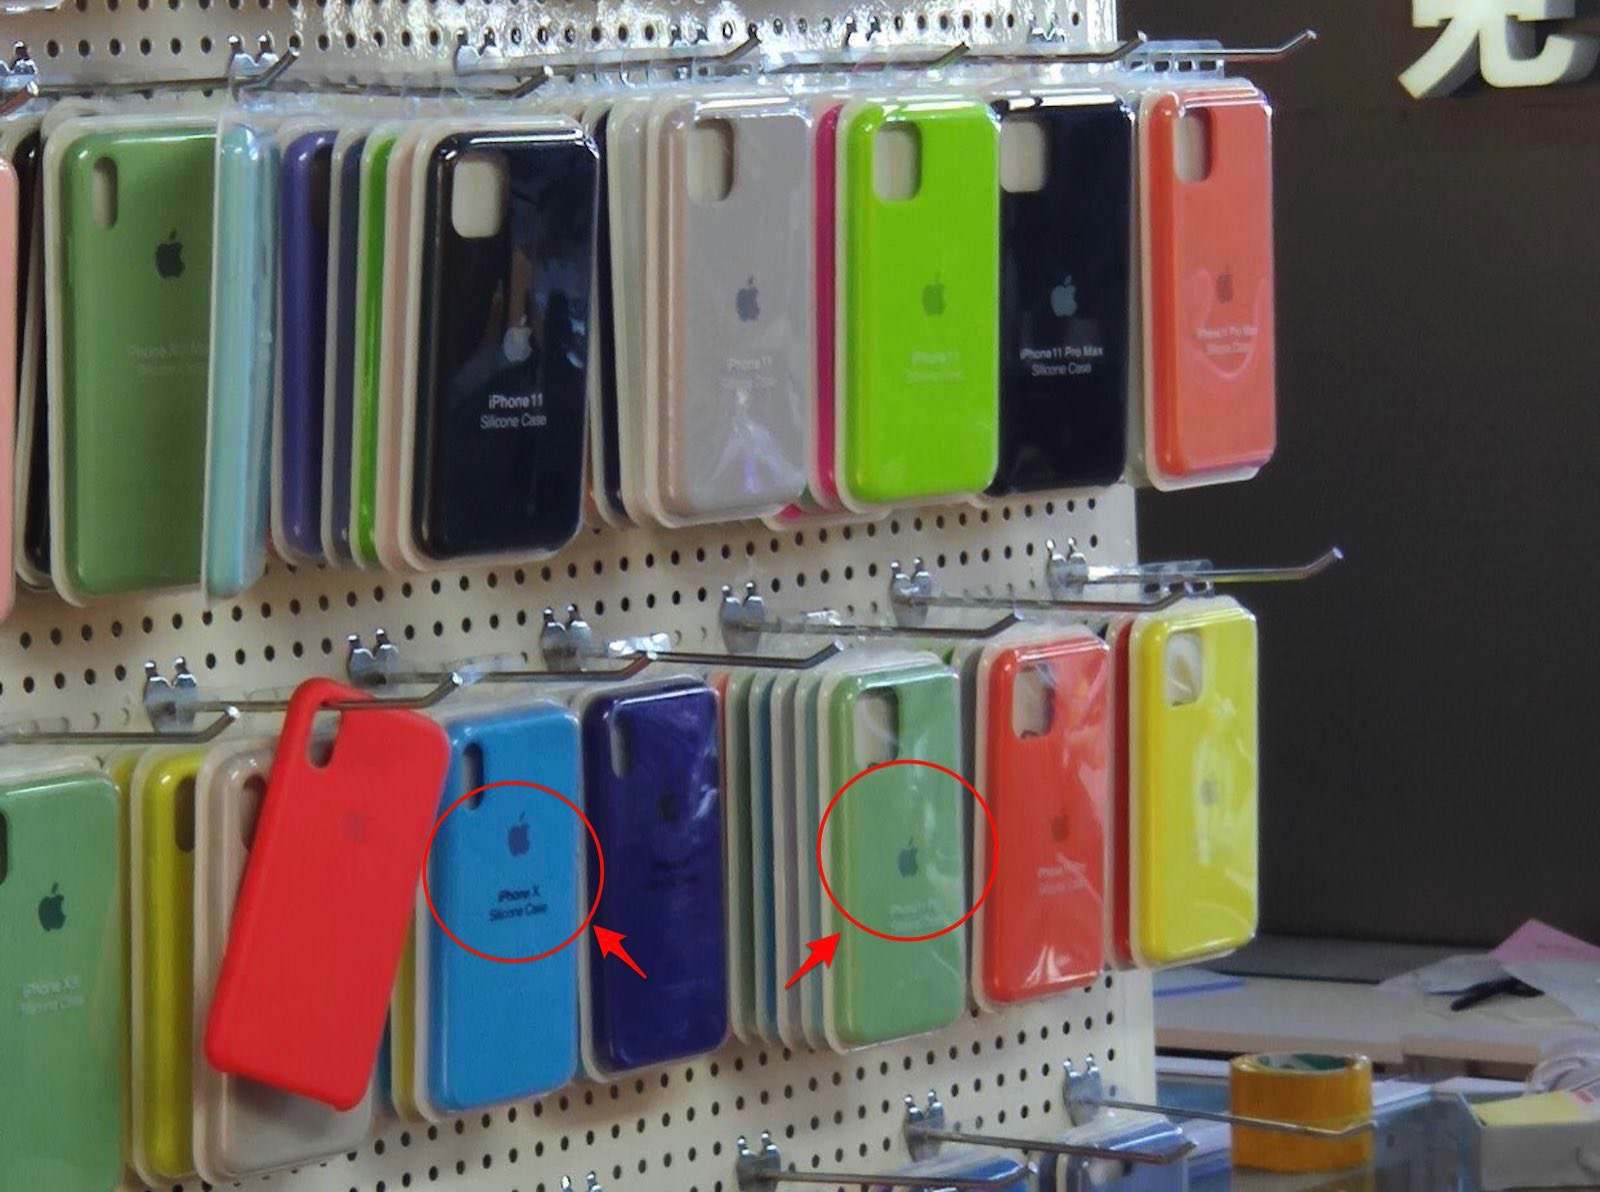 Alleged iphone 11 cases leak 3